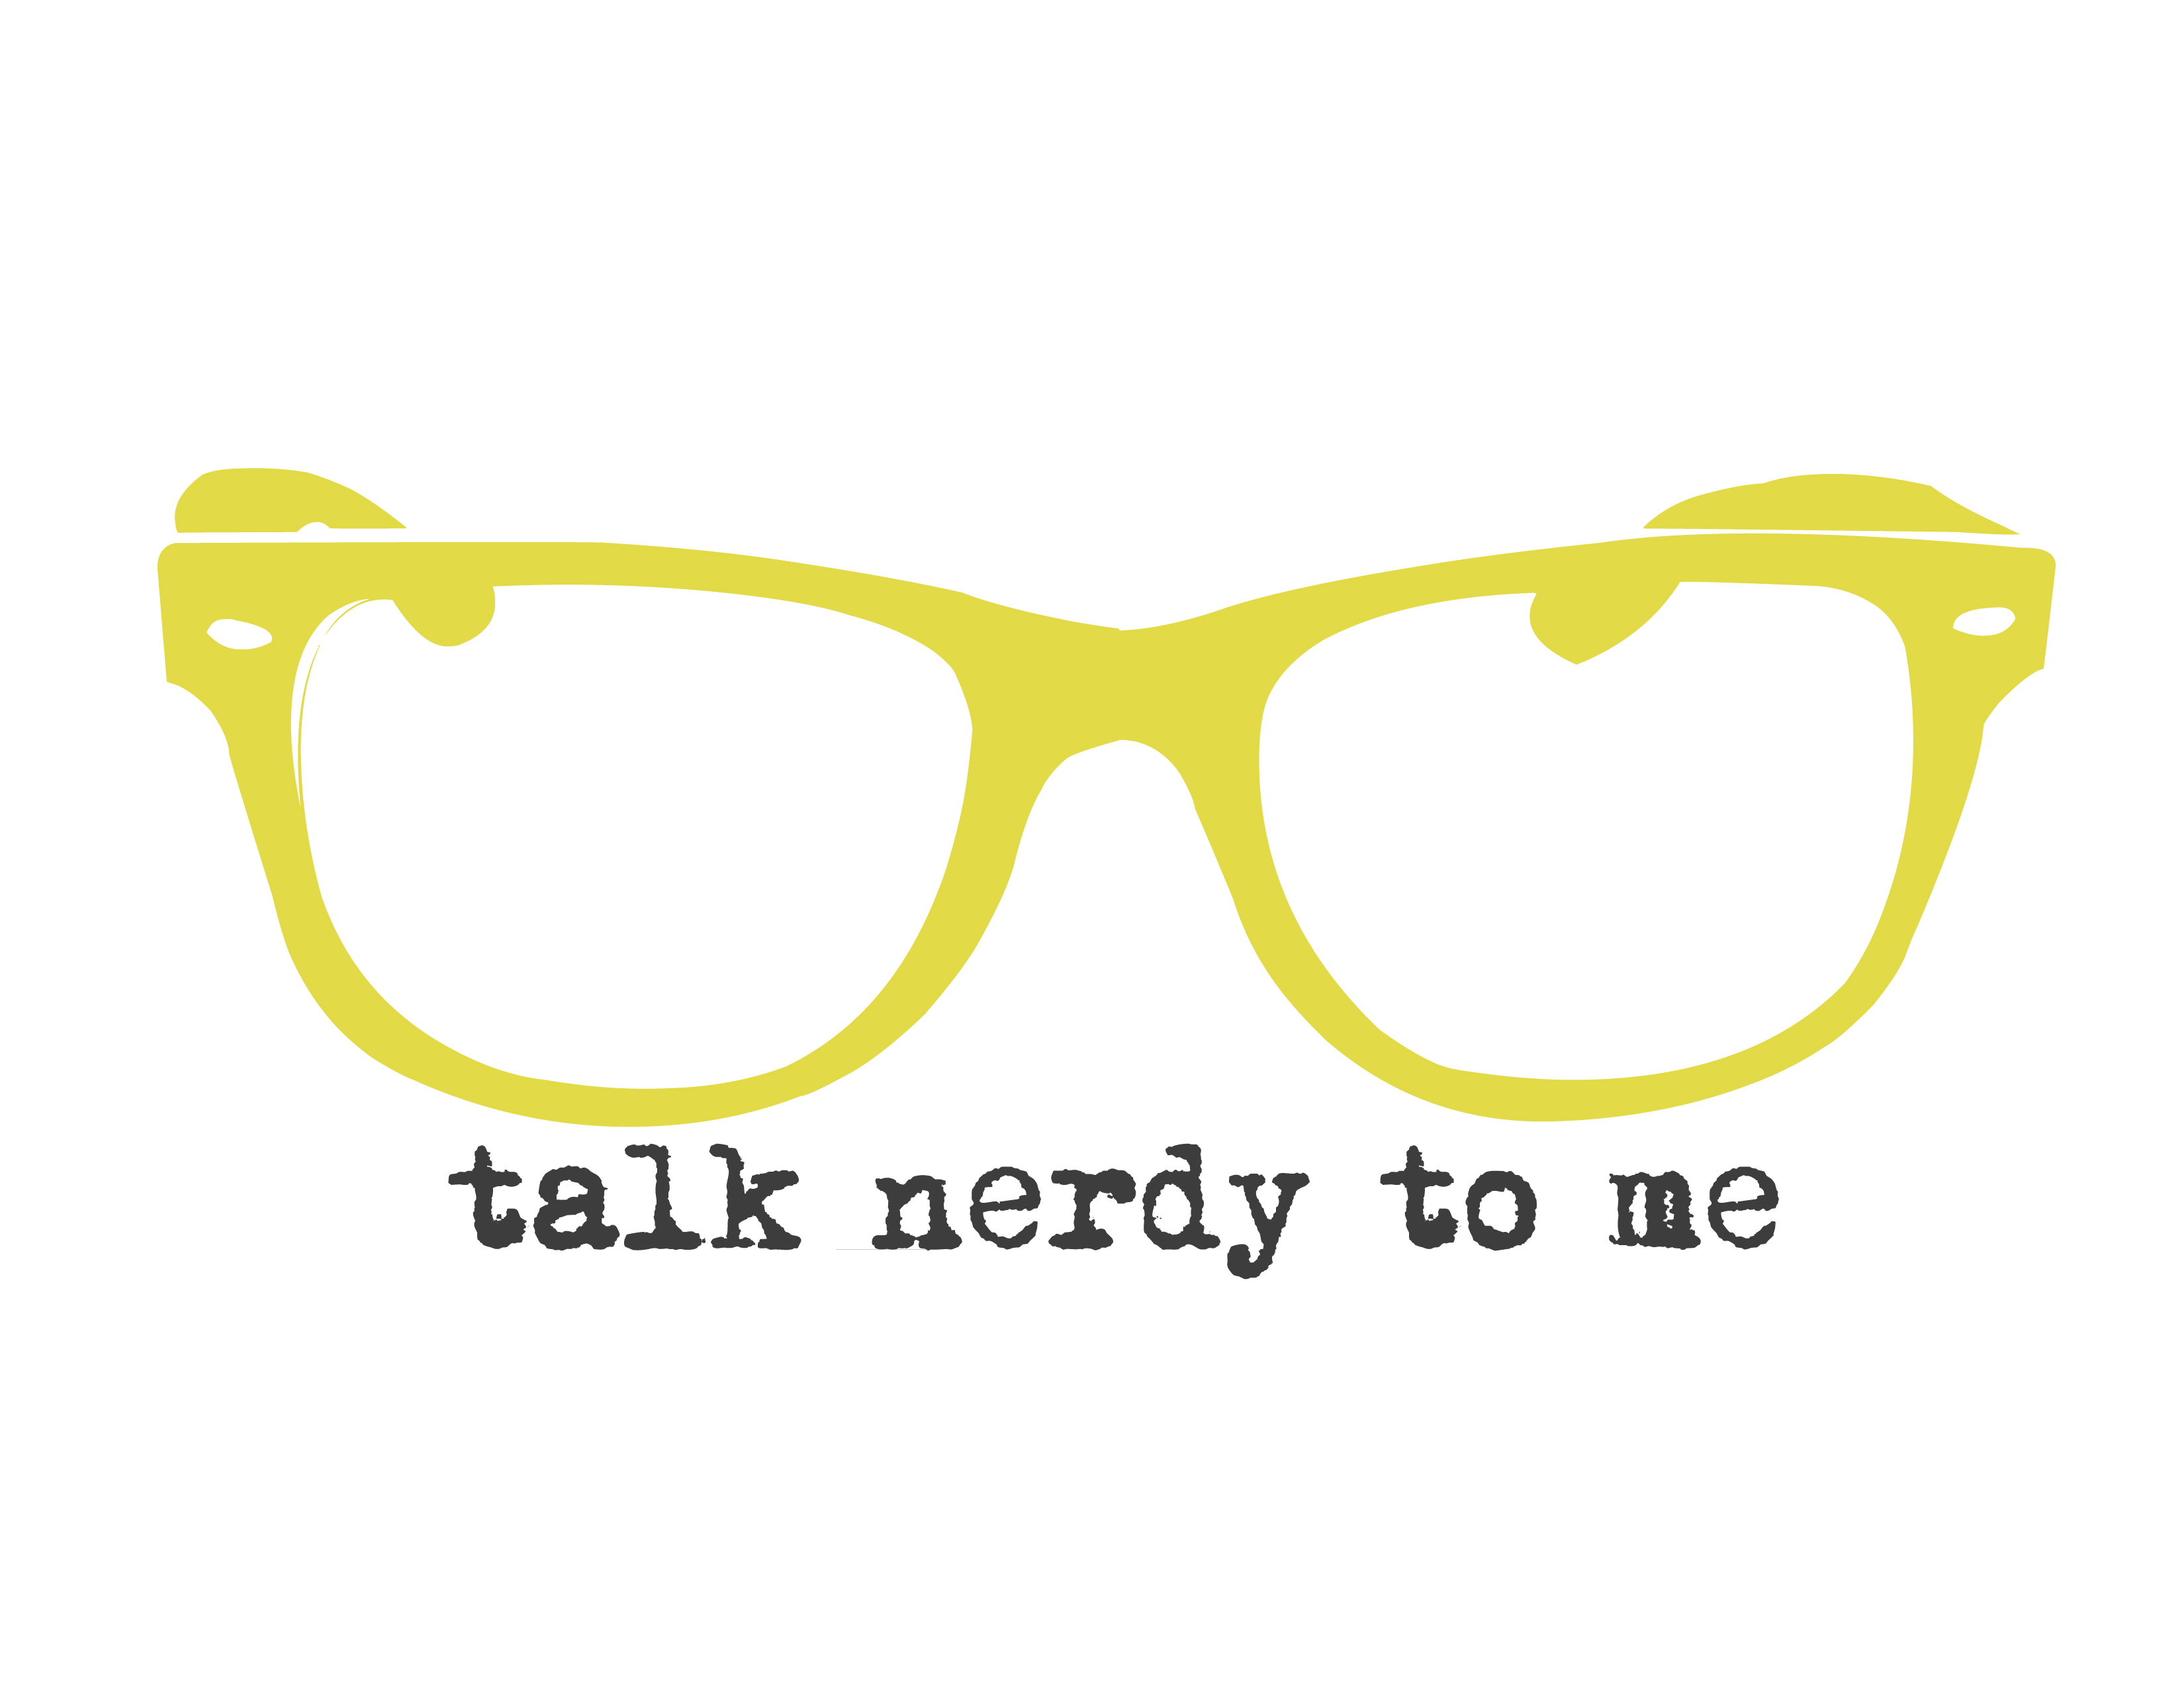 free wall art: talk nerdy to me